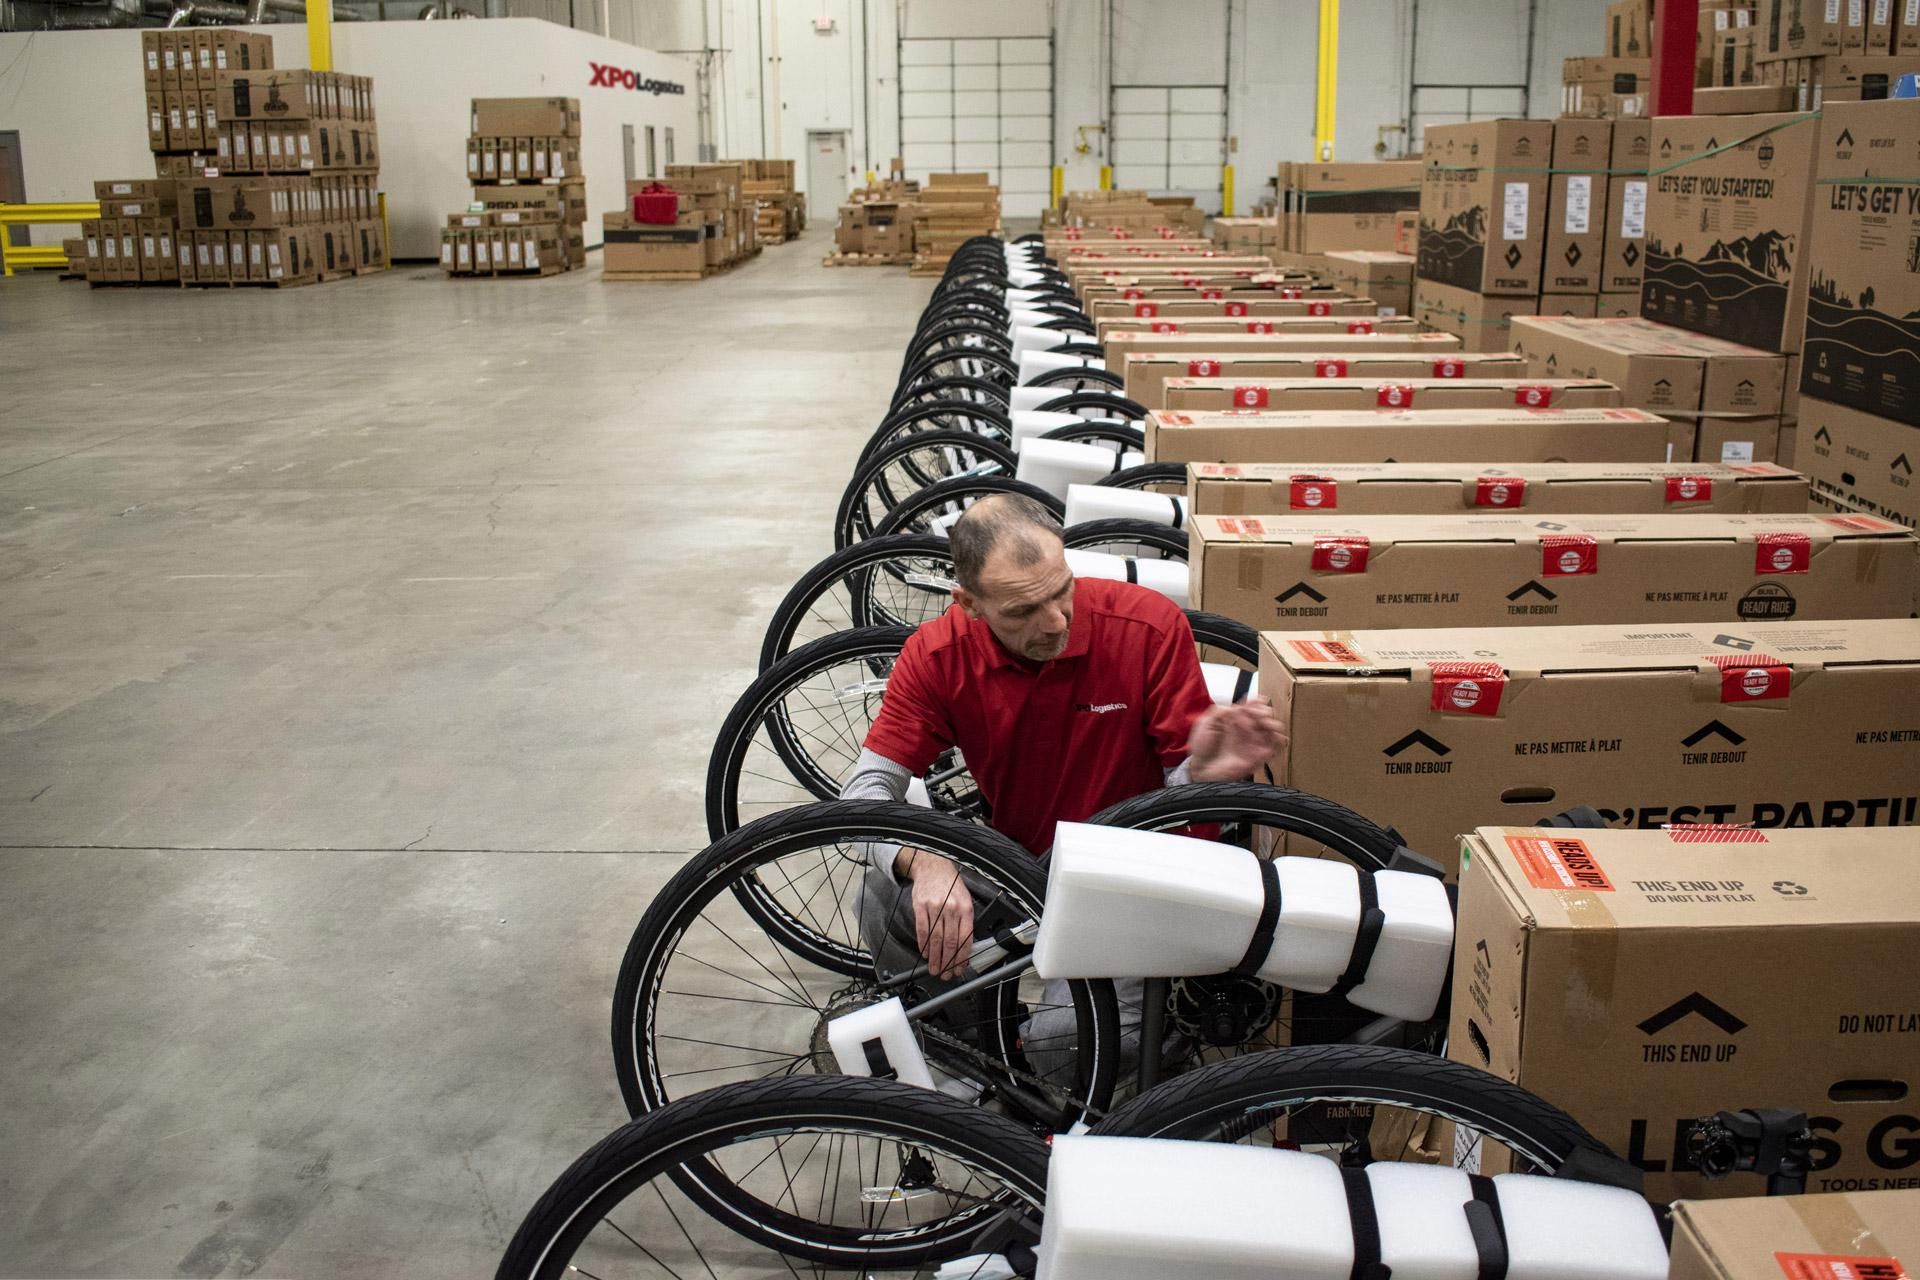 XPO employee assembles bikes before Last Mile delivery